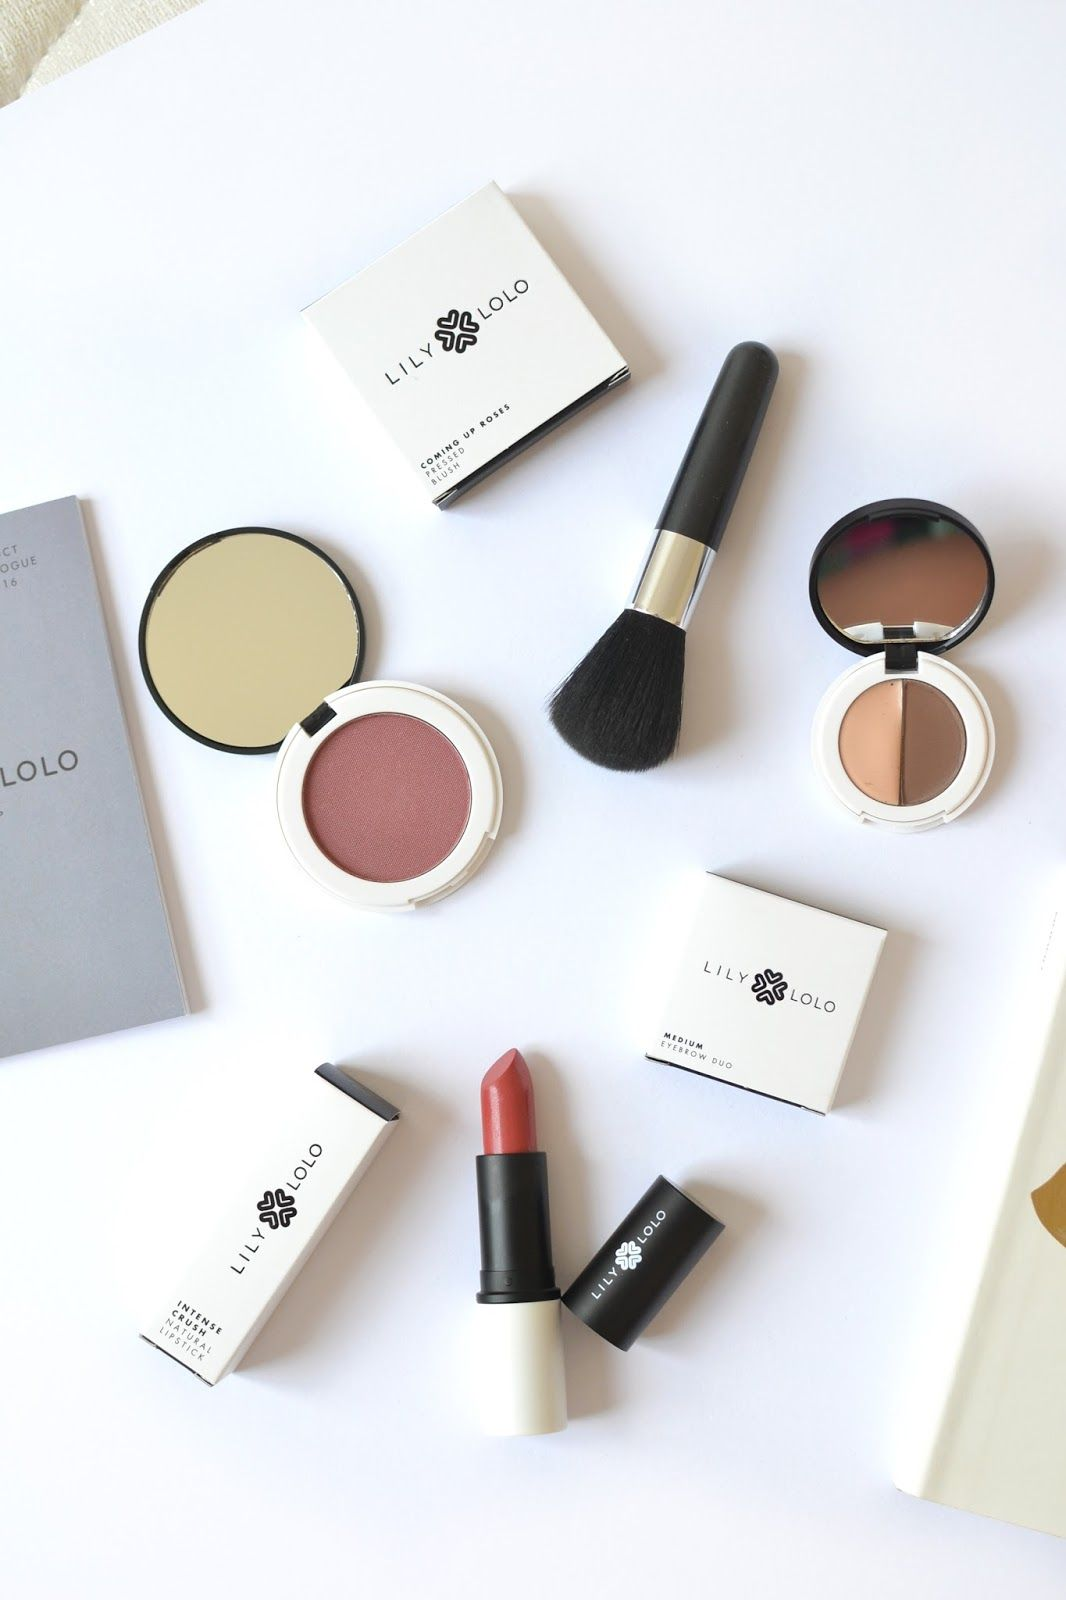 British Beauty Brand | Lily Lolo - Temporary:Secretary Lifestyle Blog